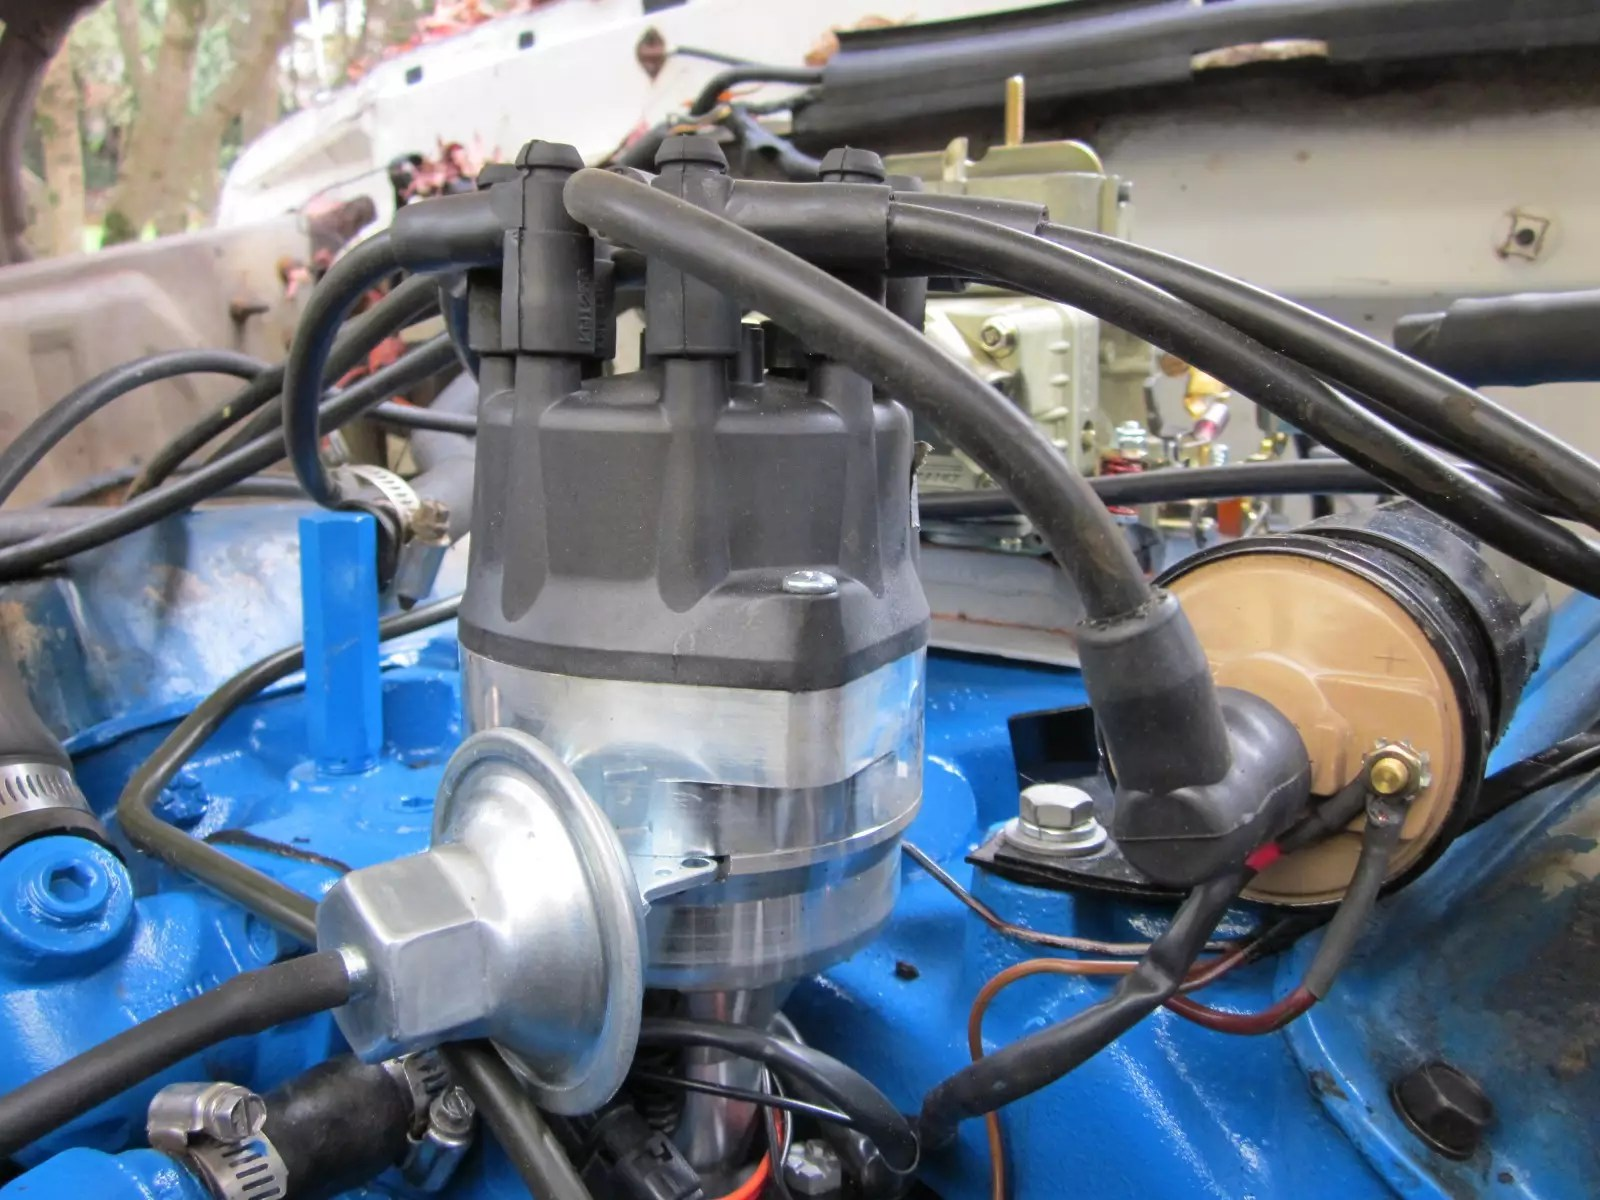 Dodge Ignition Wiring Diagram For 1973 Tuneup Tips A Simple Tuneup Guide For Old Dormant